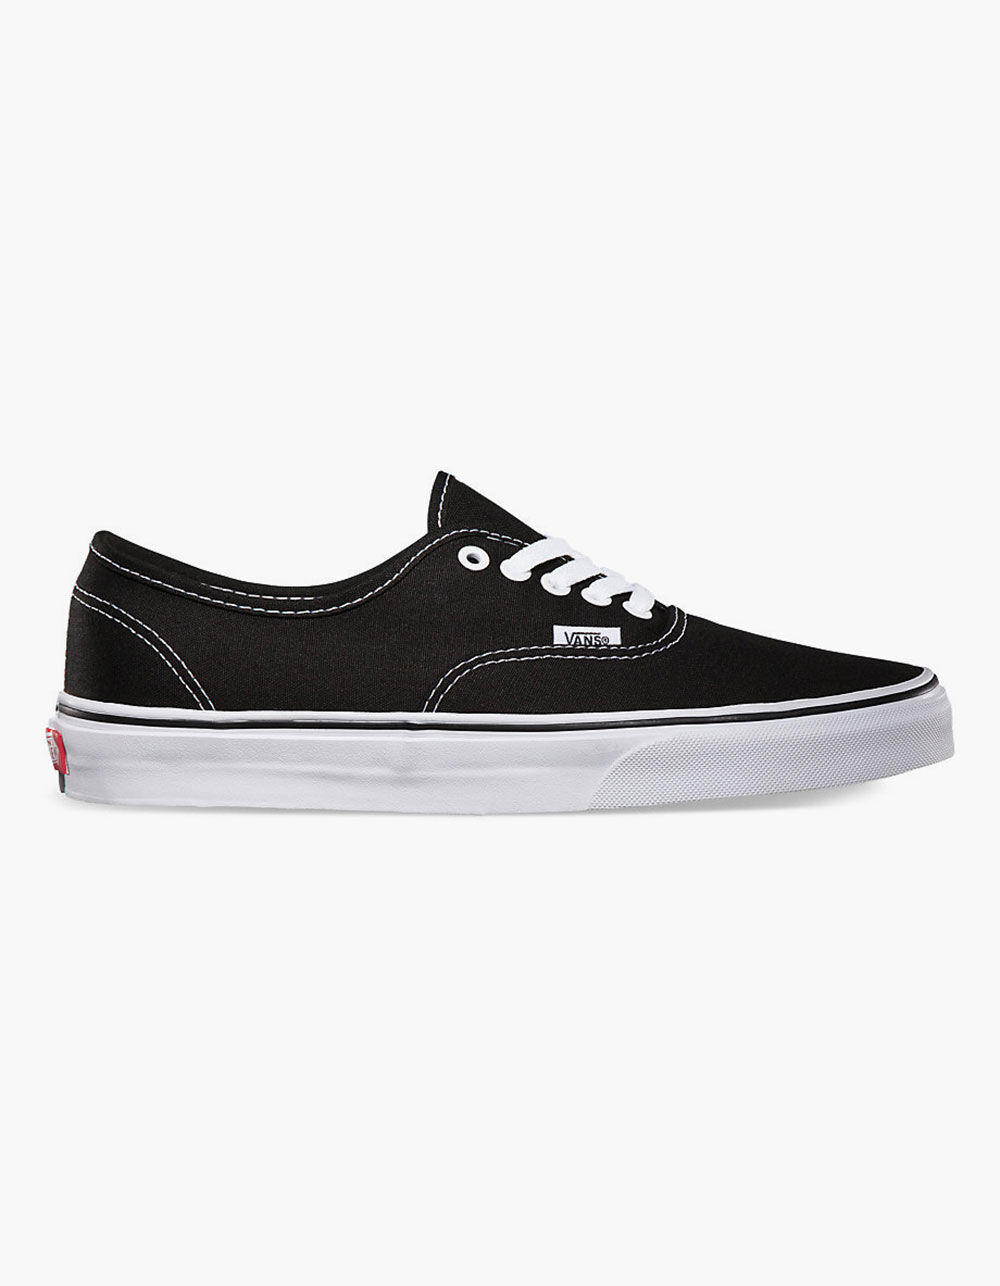 VANS Authentic Black Shoes